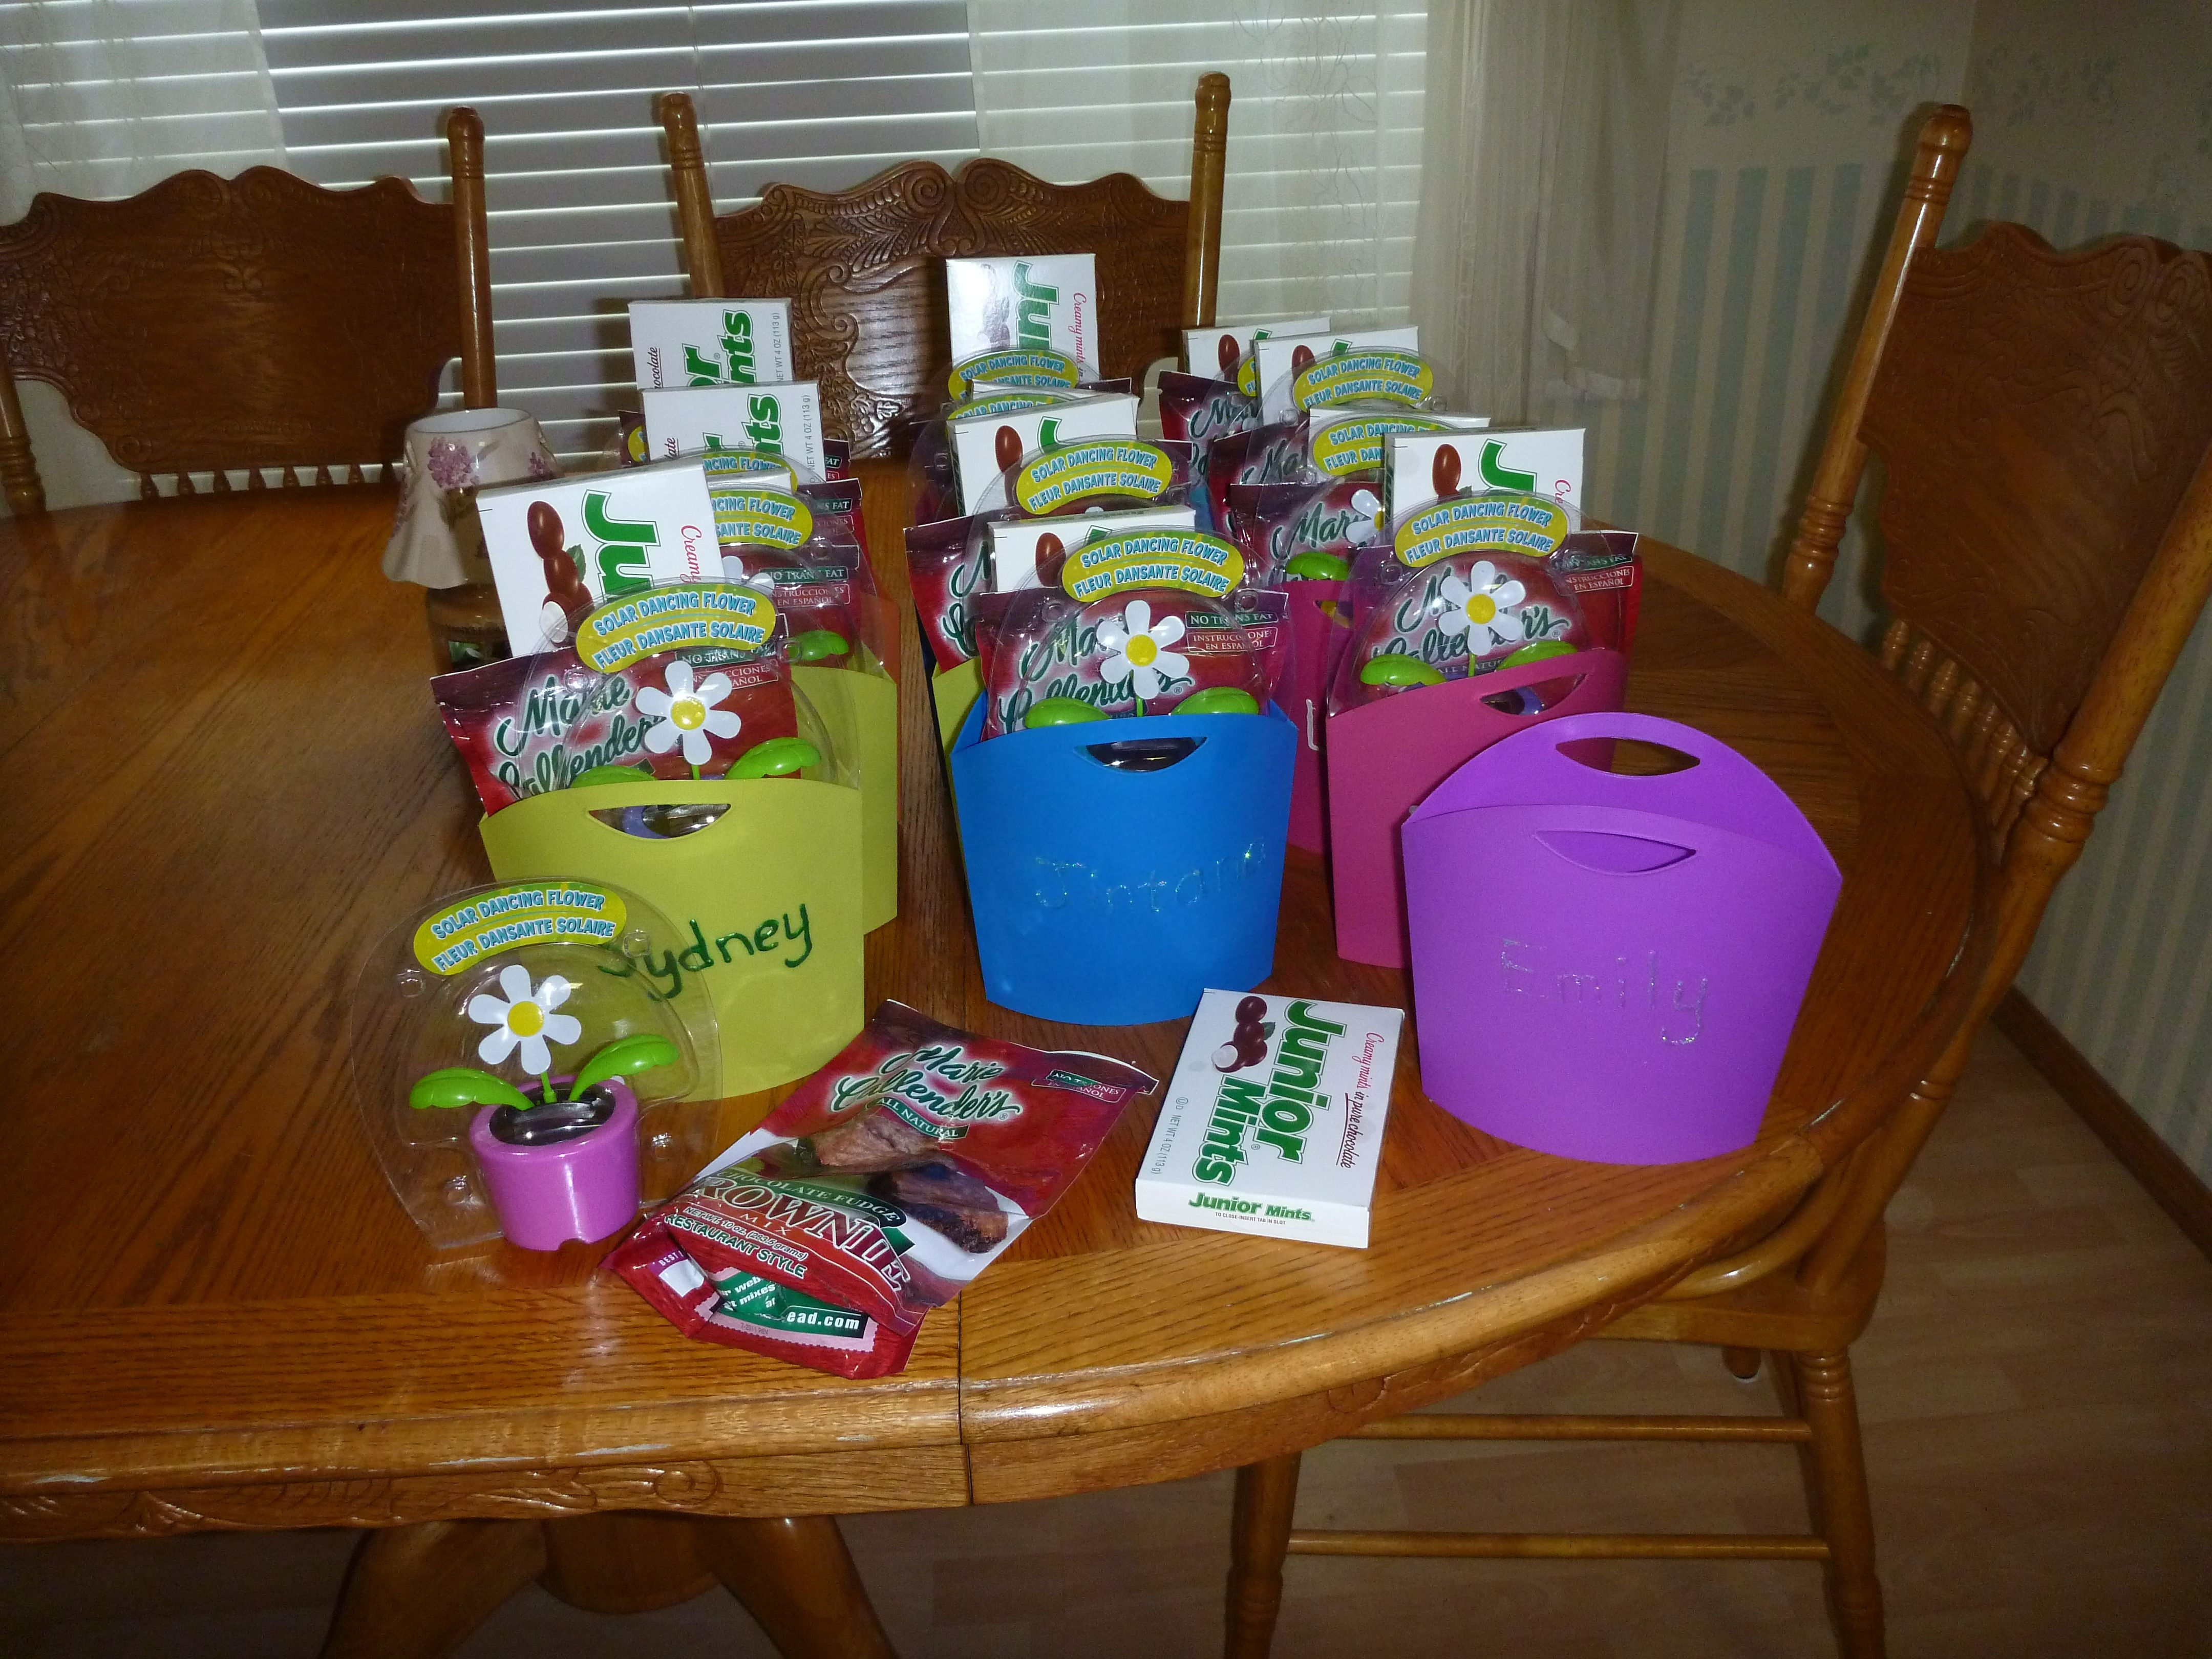 Girl scout scrapbook ideas - My Girl Scouts Are Bridging To Juniors Today My Gift To Them Symbolizes Their Journey